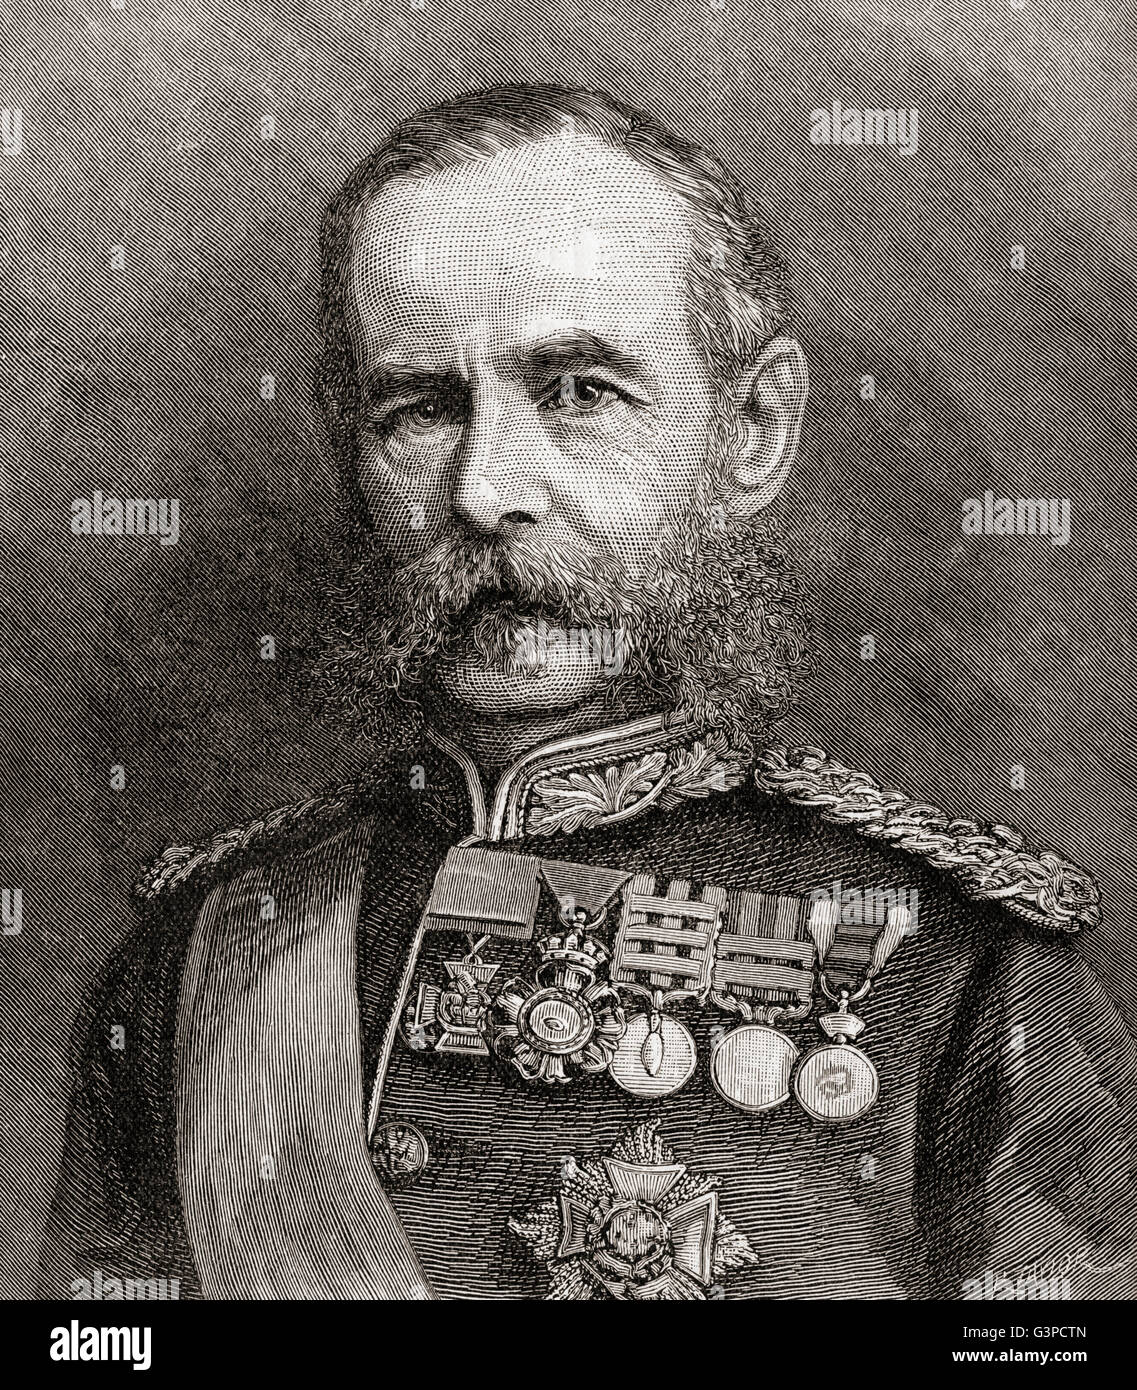 Field Marshal Frederick Sleigh Roberts, 1st Earl Roberts, 1832 – 1914. British soldier and commander. - Stock Image